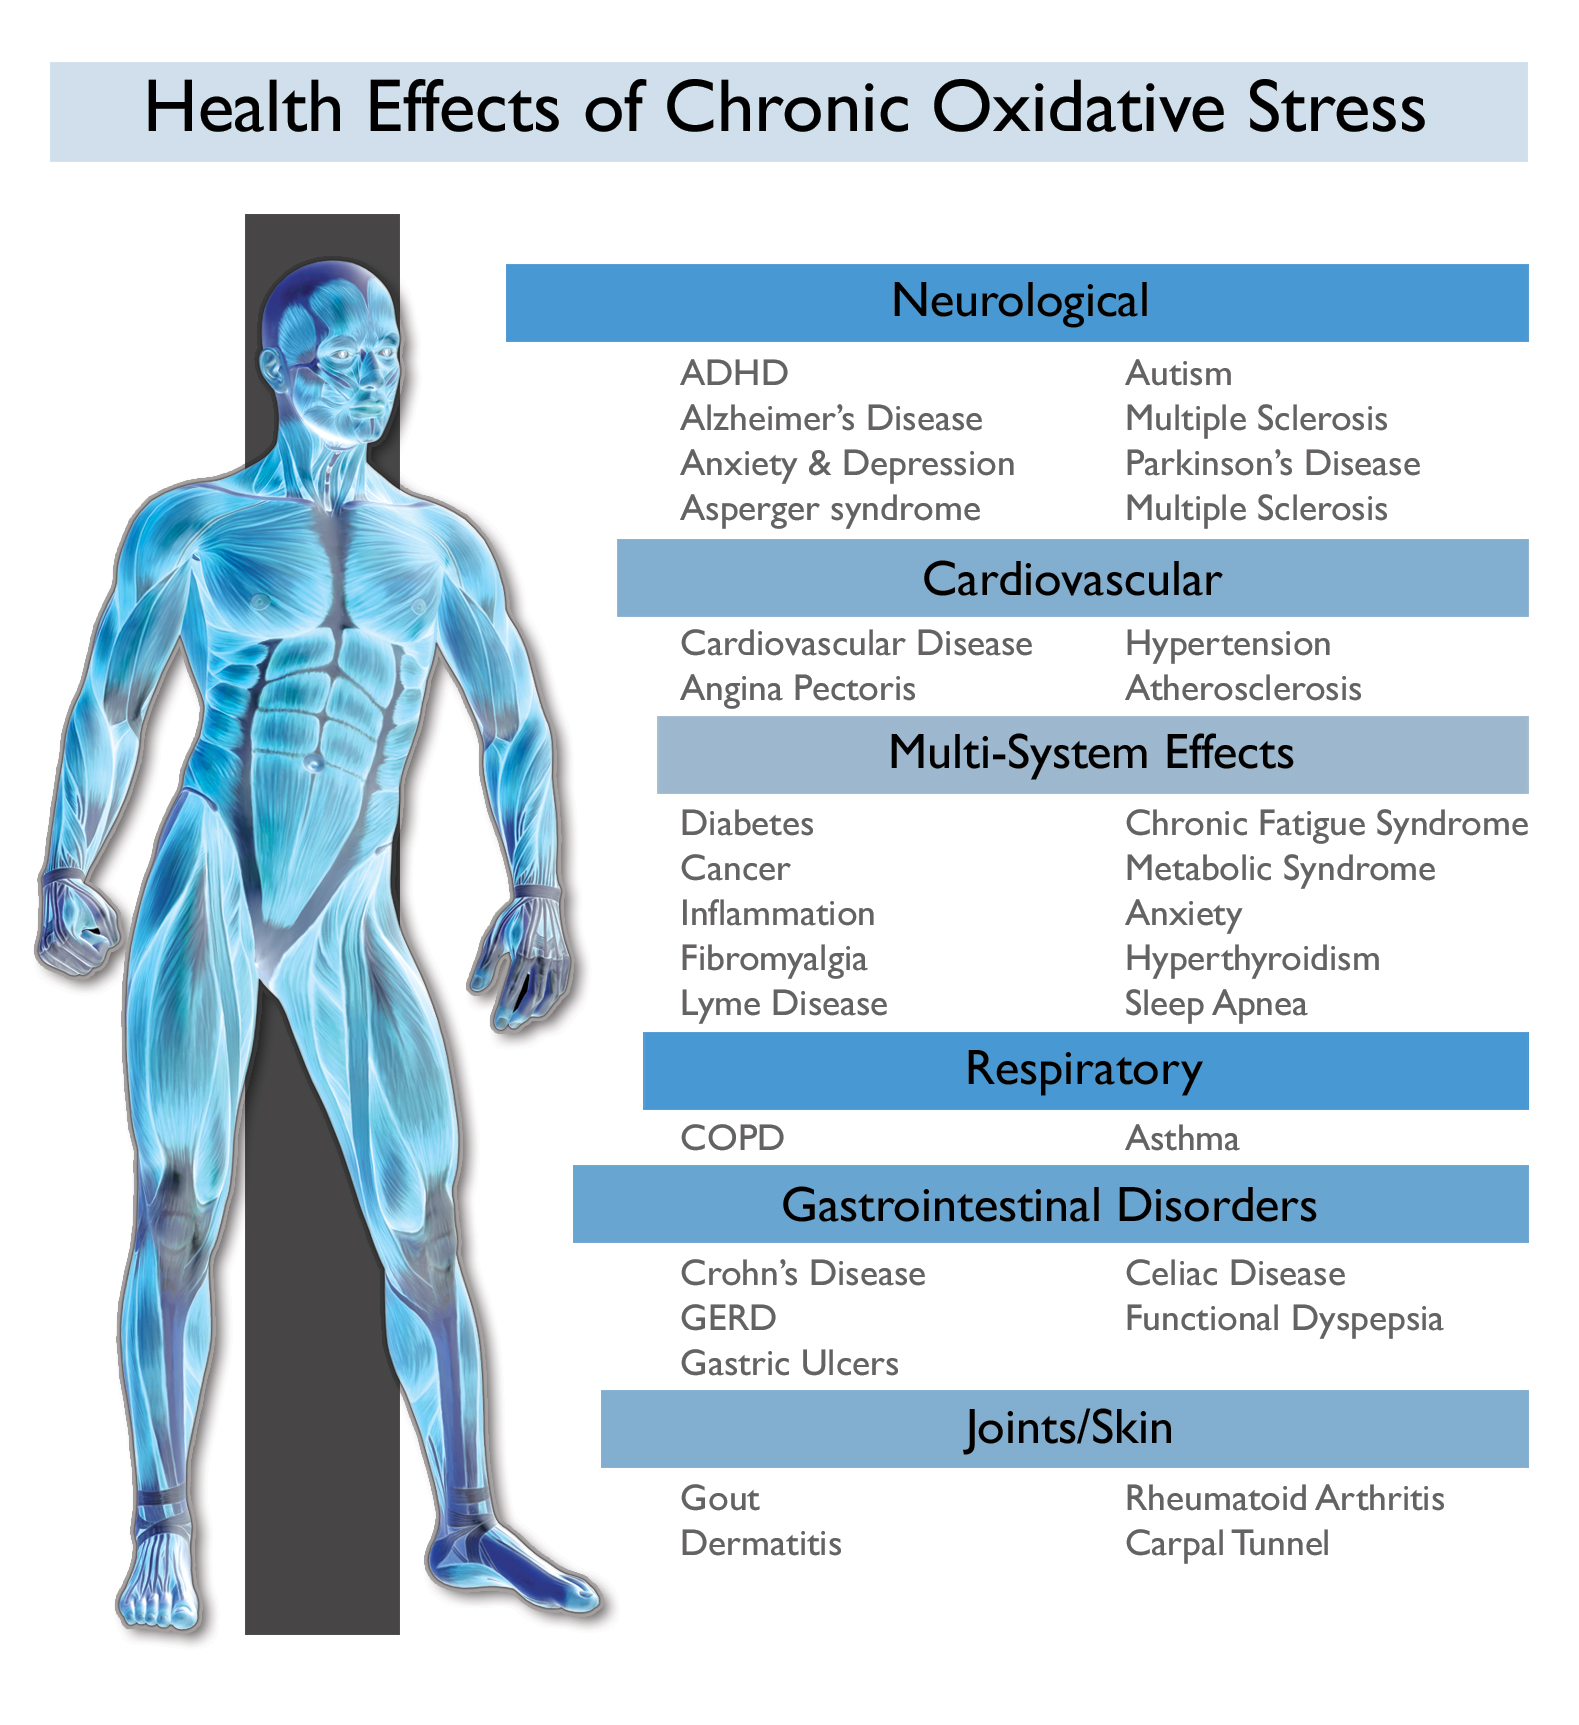 chronic-oxidative-stress-and-the-body